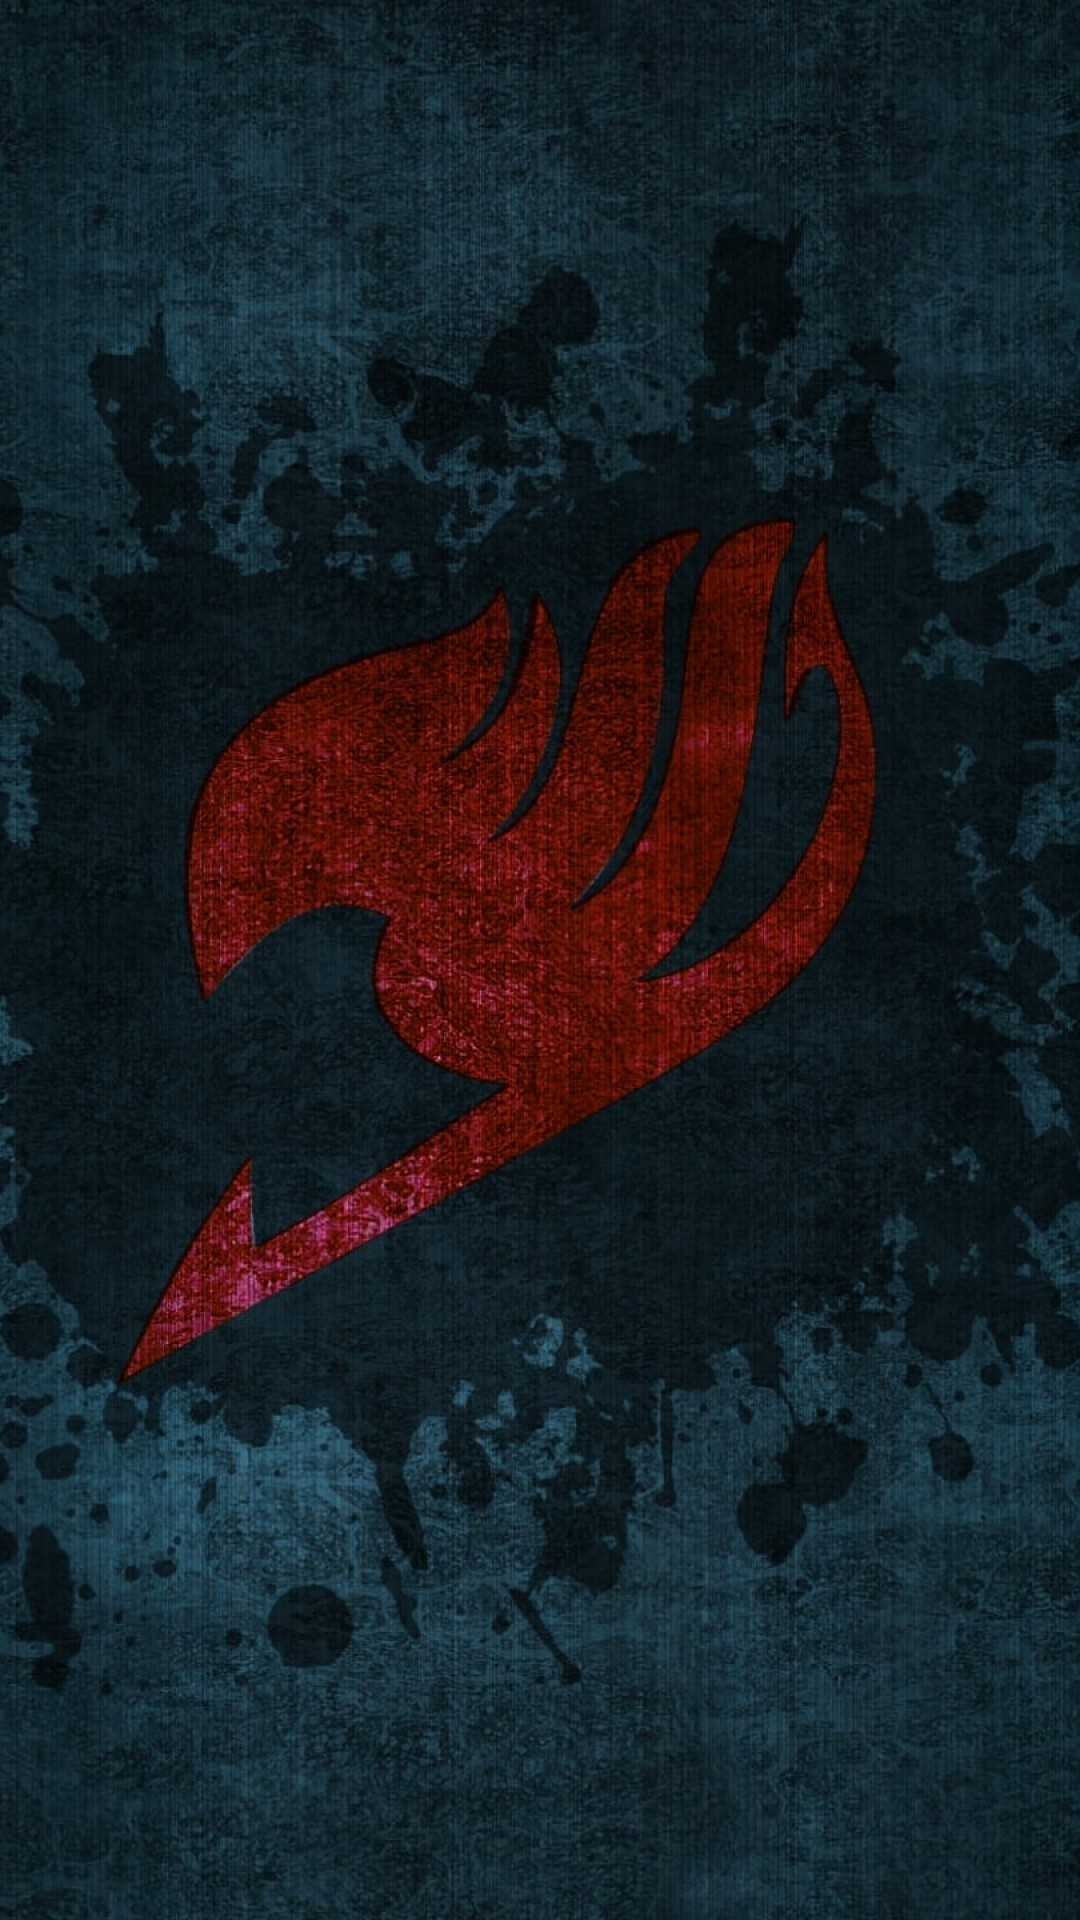 Fairy Tail wallpaper for iPhone